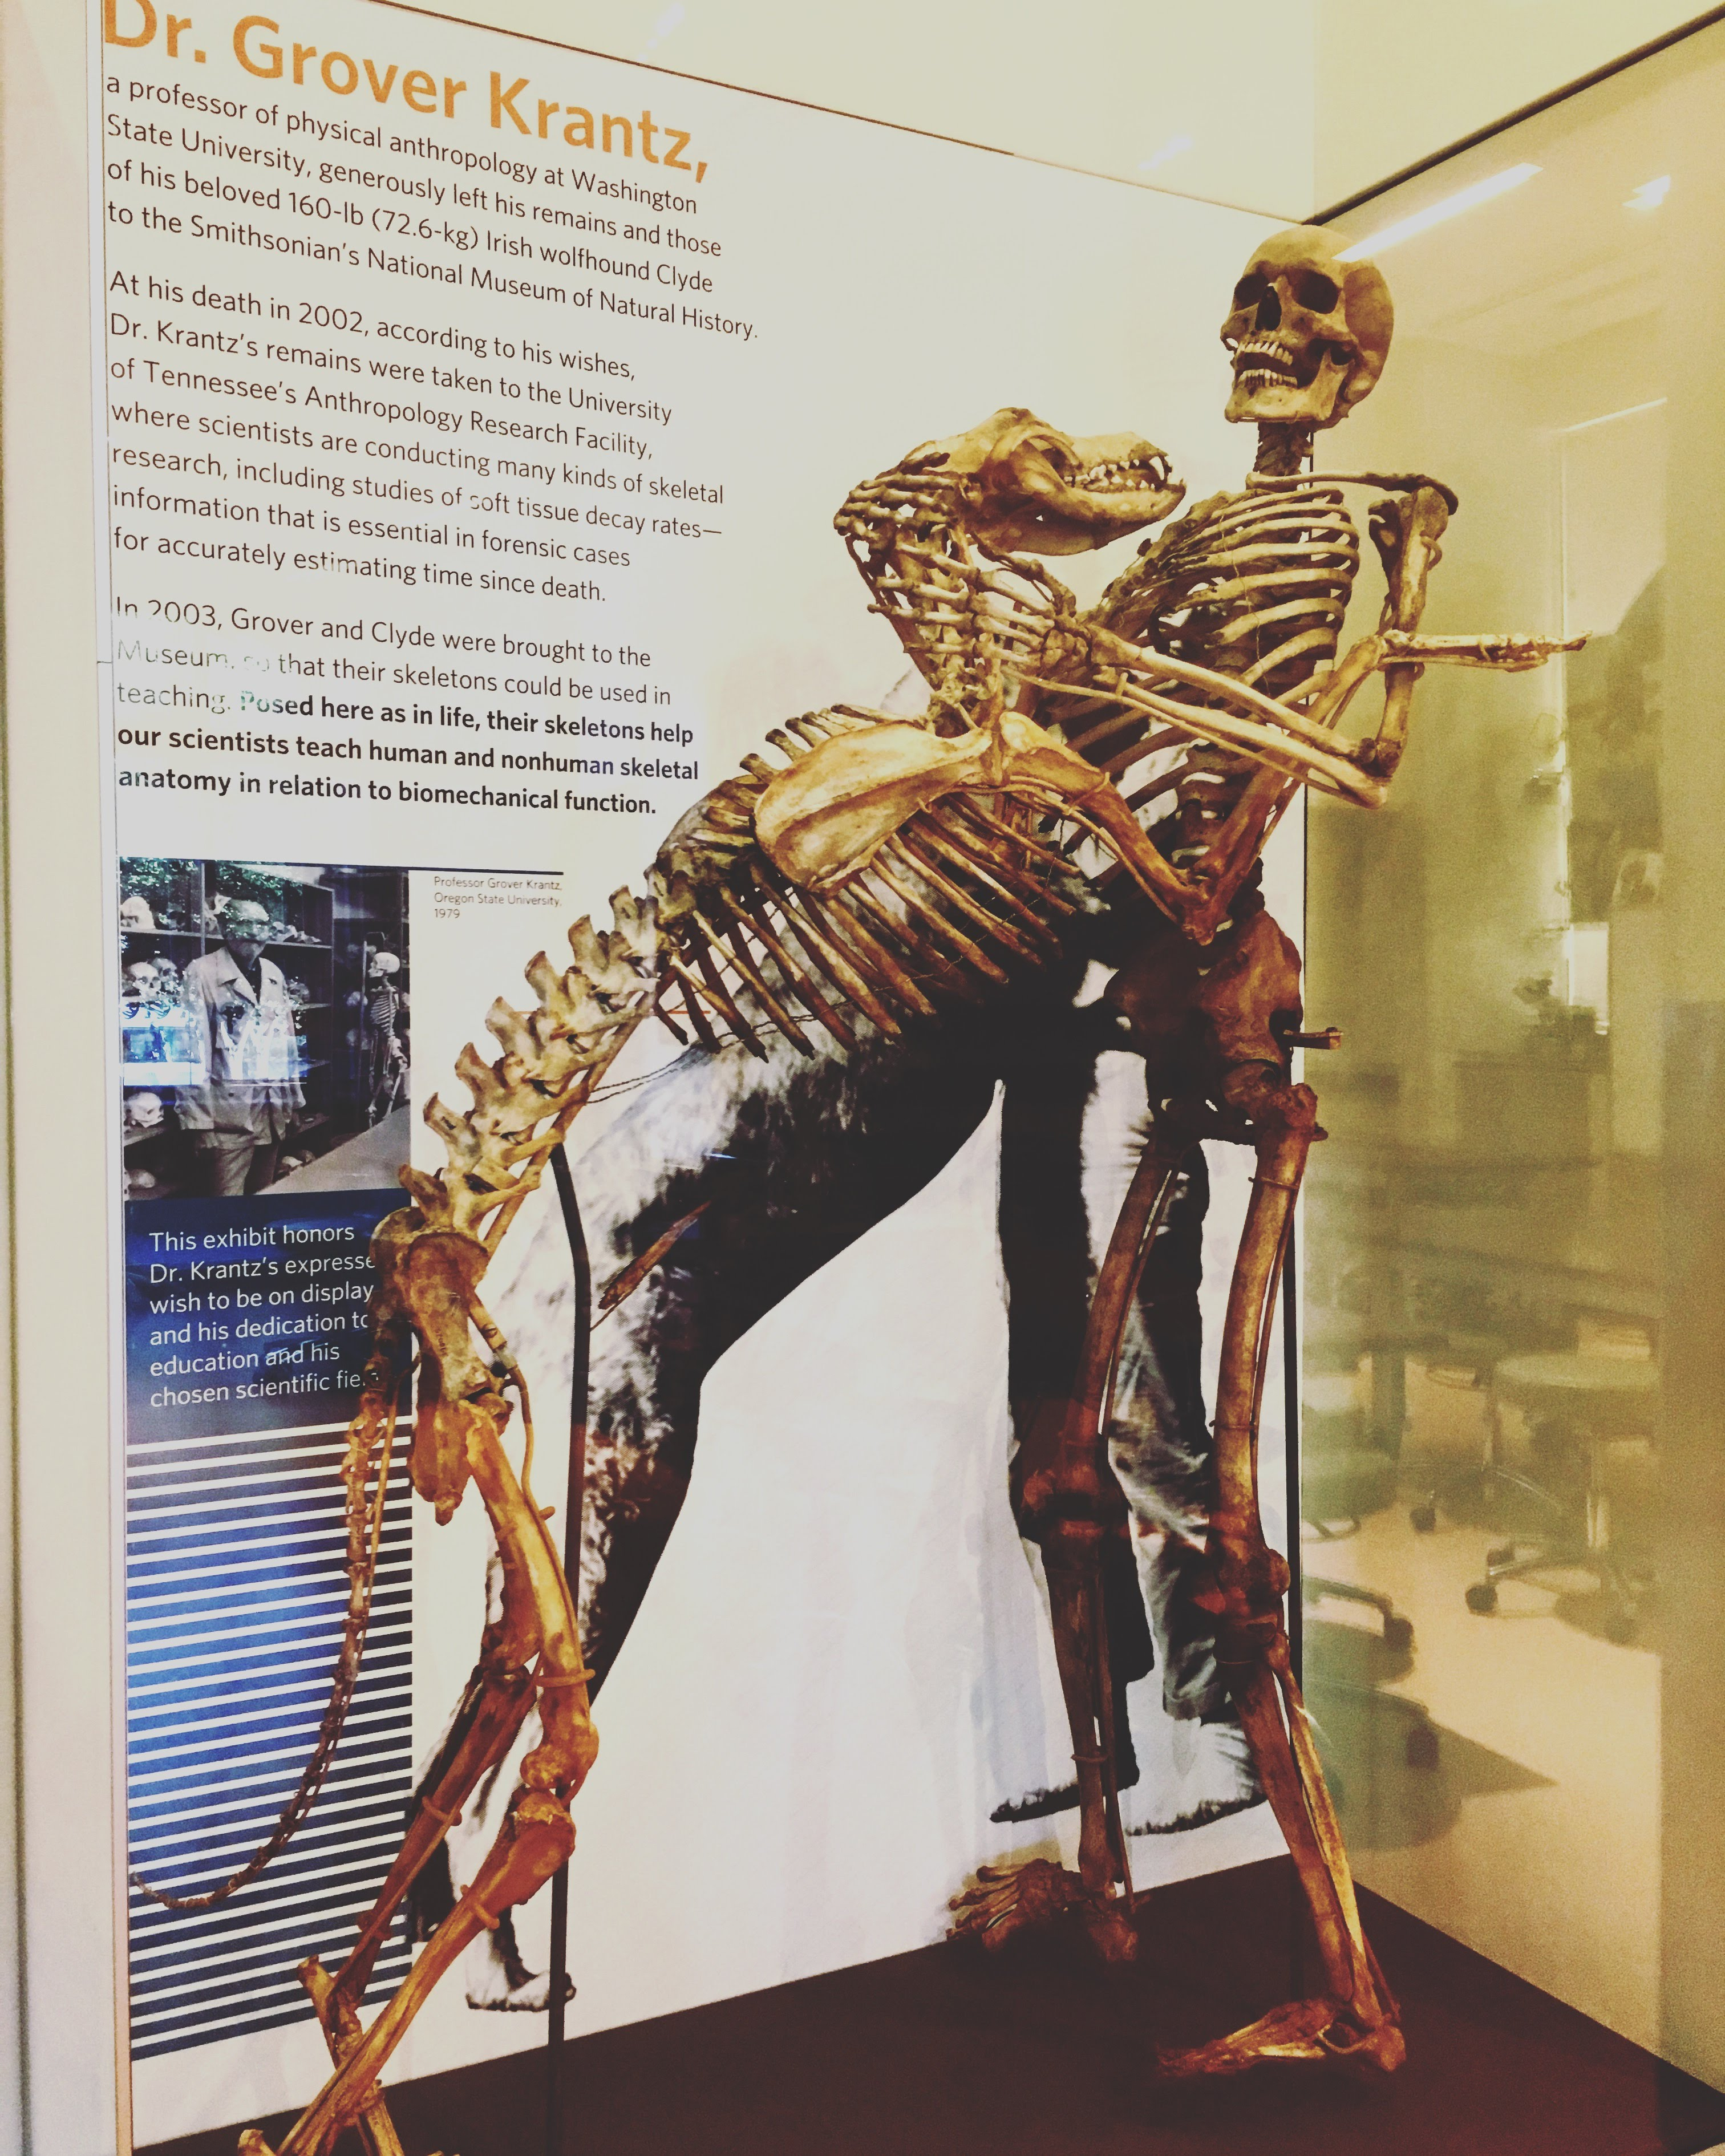 The bones of Grover Krantz and one of his dogs